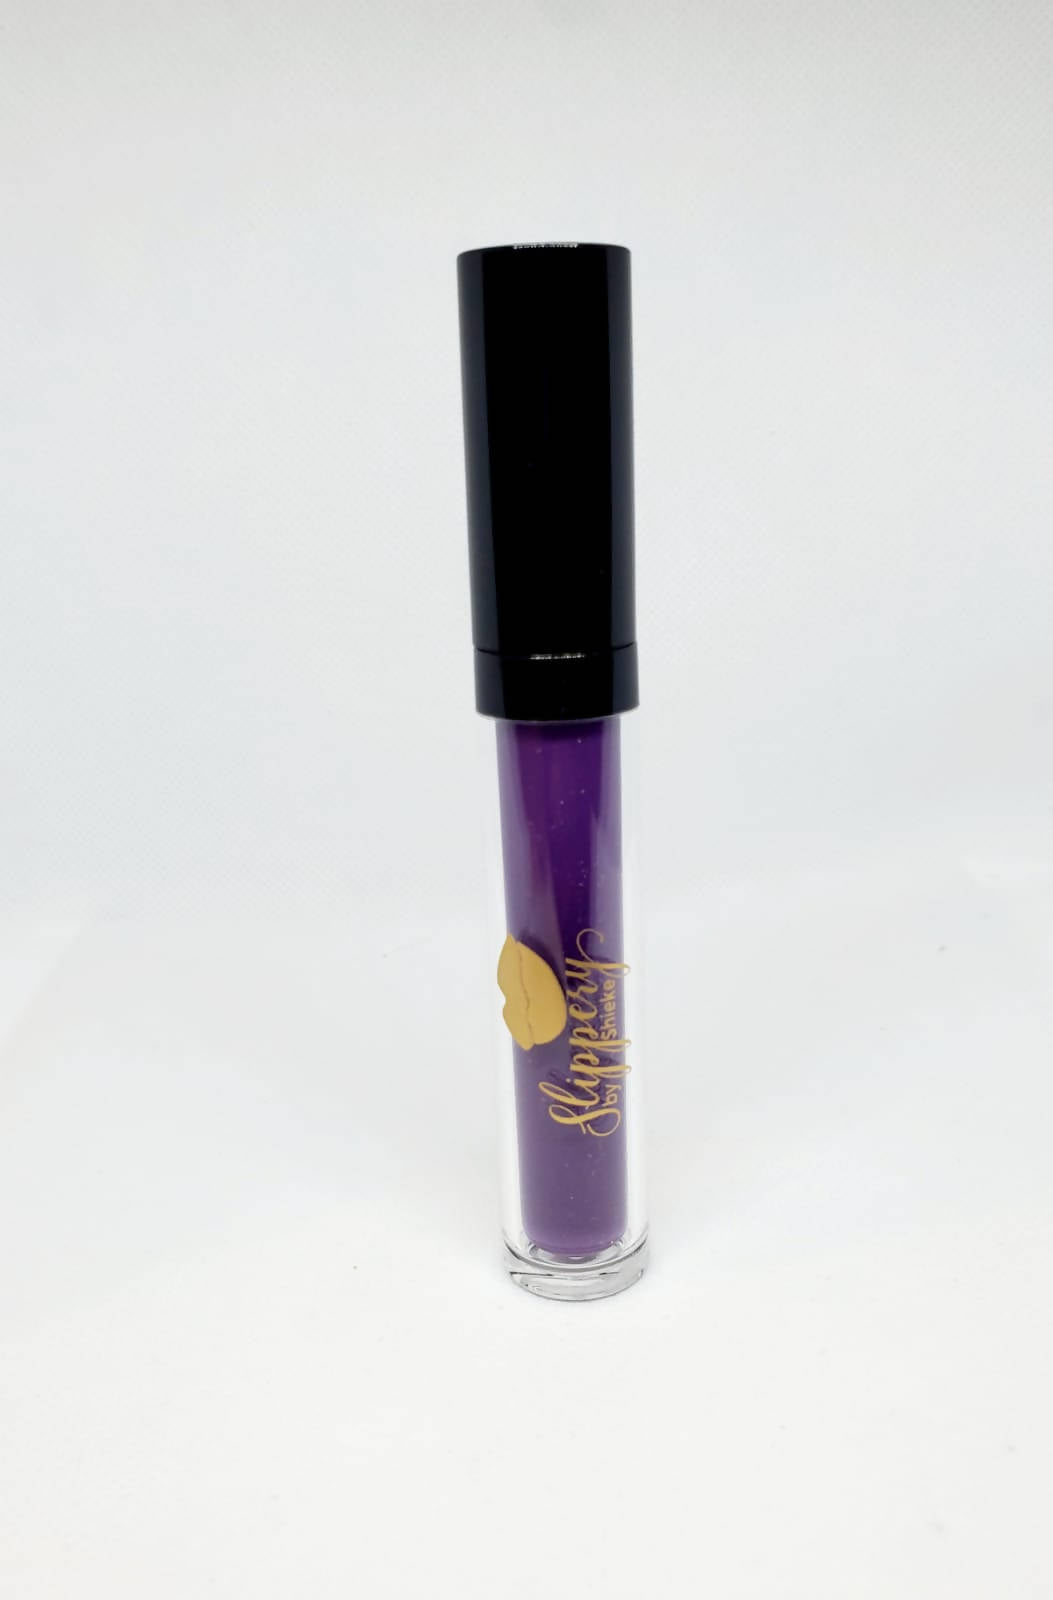 Slippery by Shieke Fantasy Lip Shine Gloss